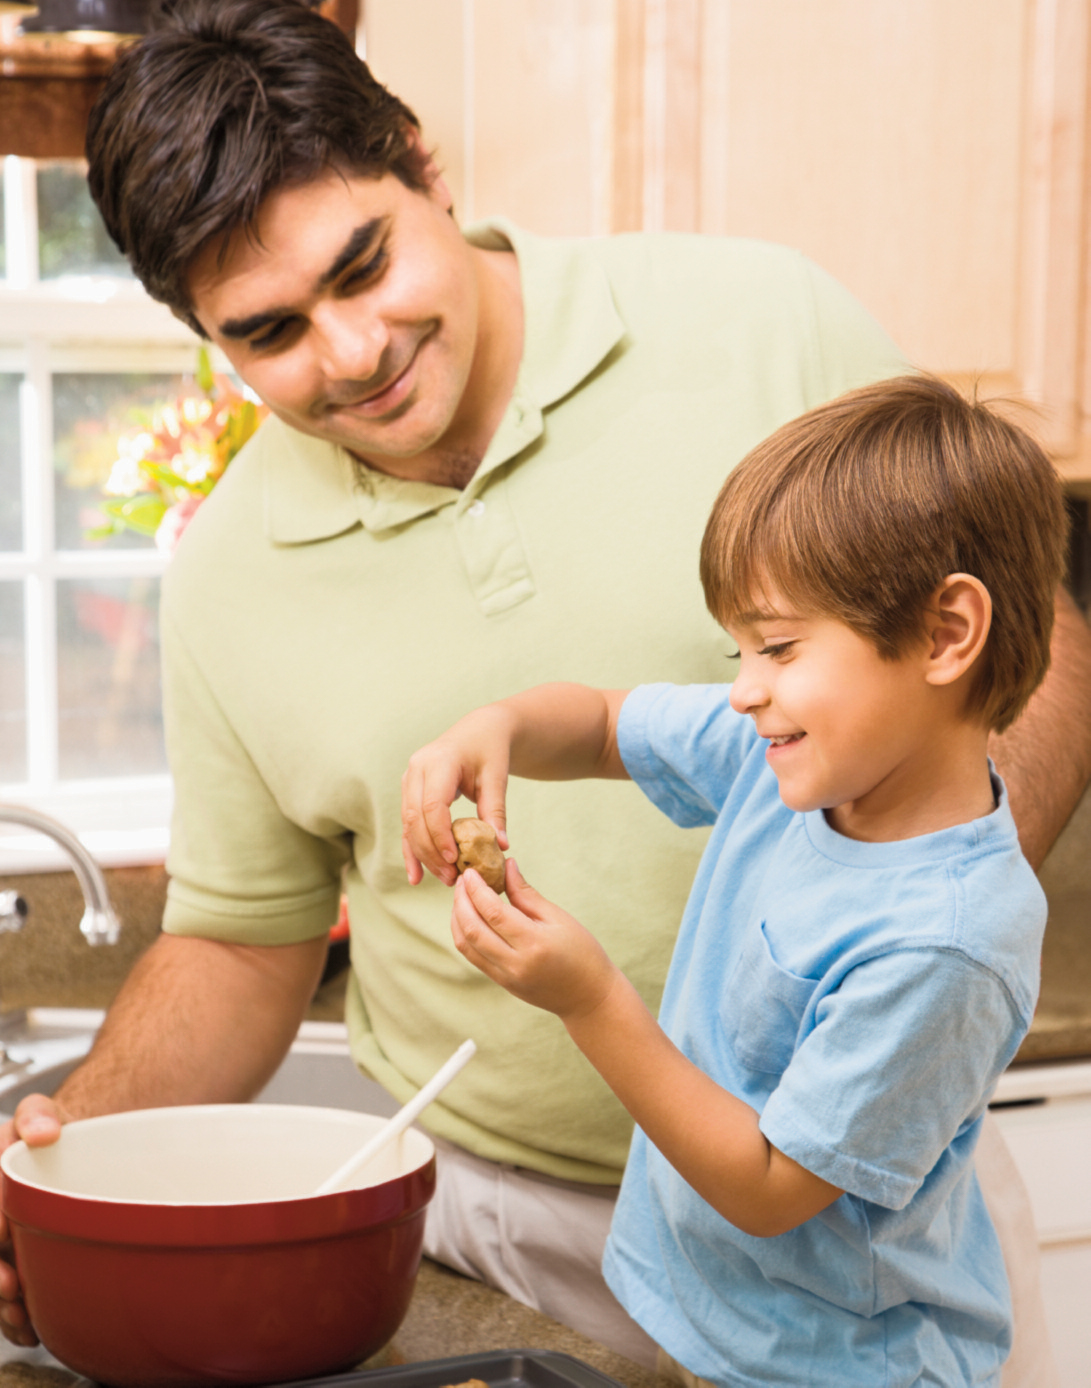 father holds mixing bowl while son shapes cookie dough